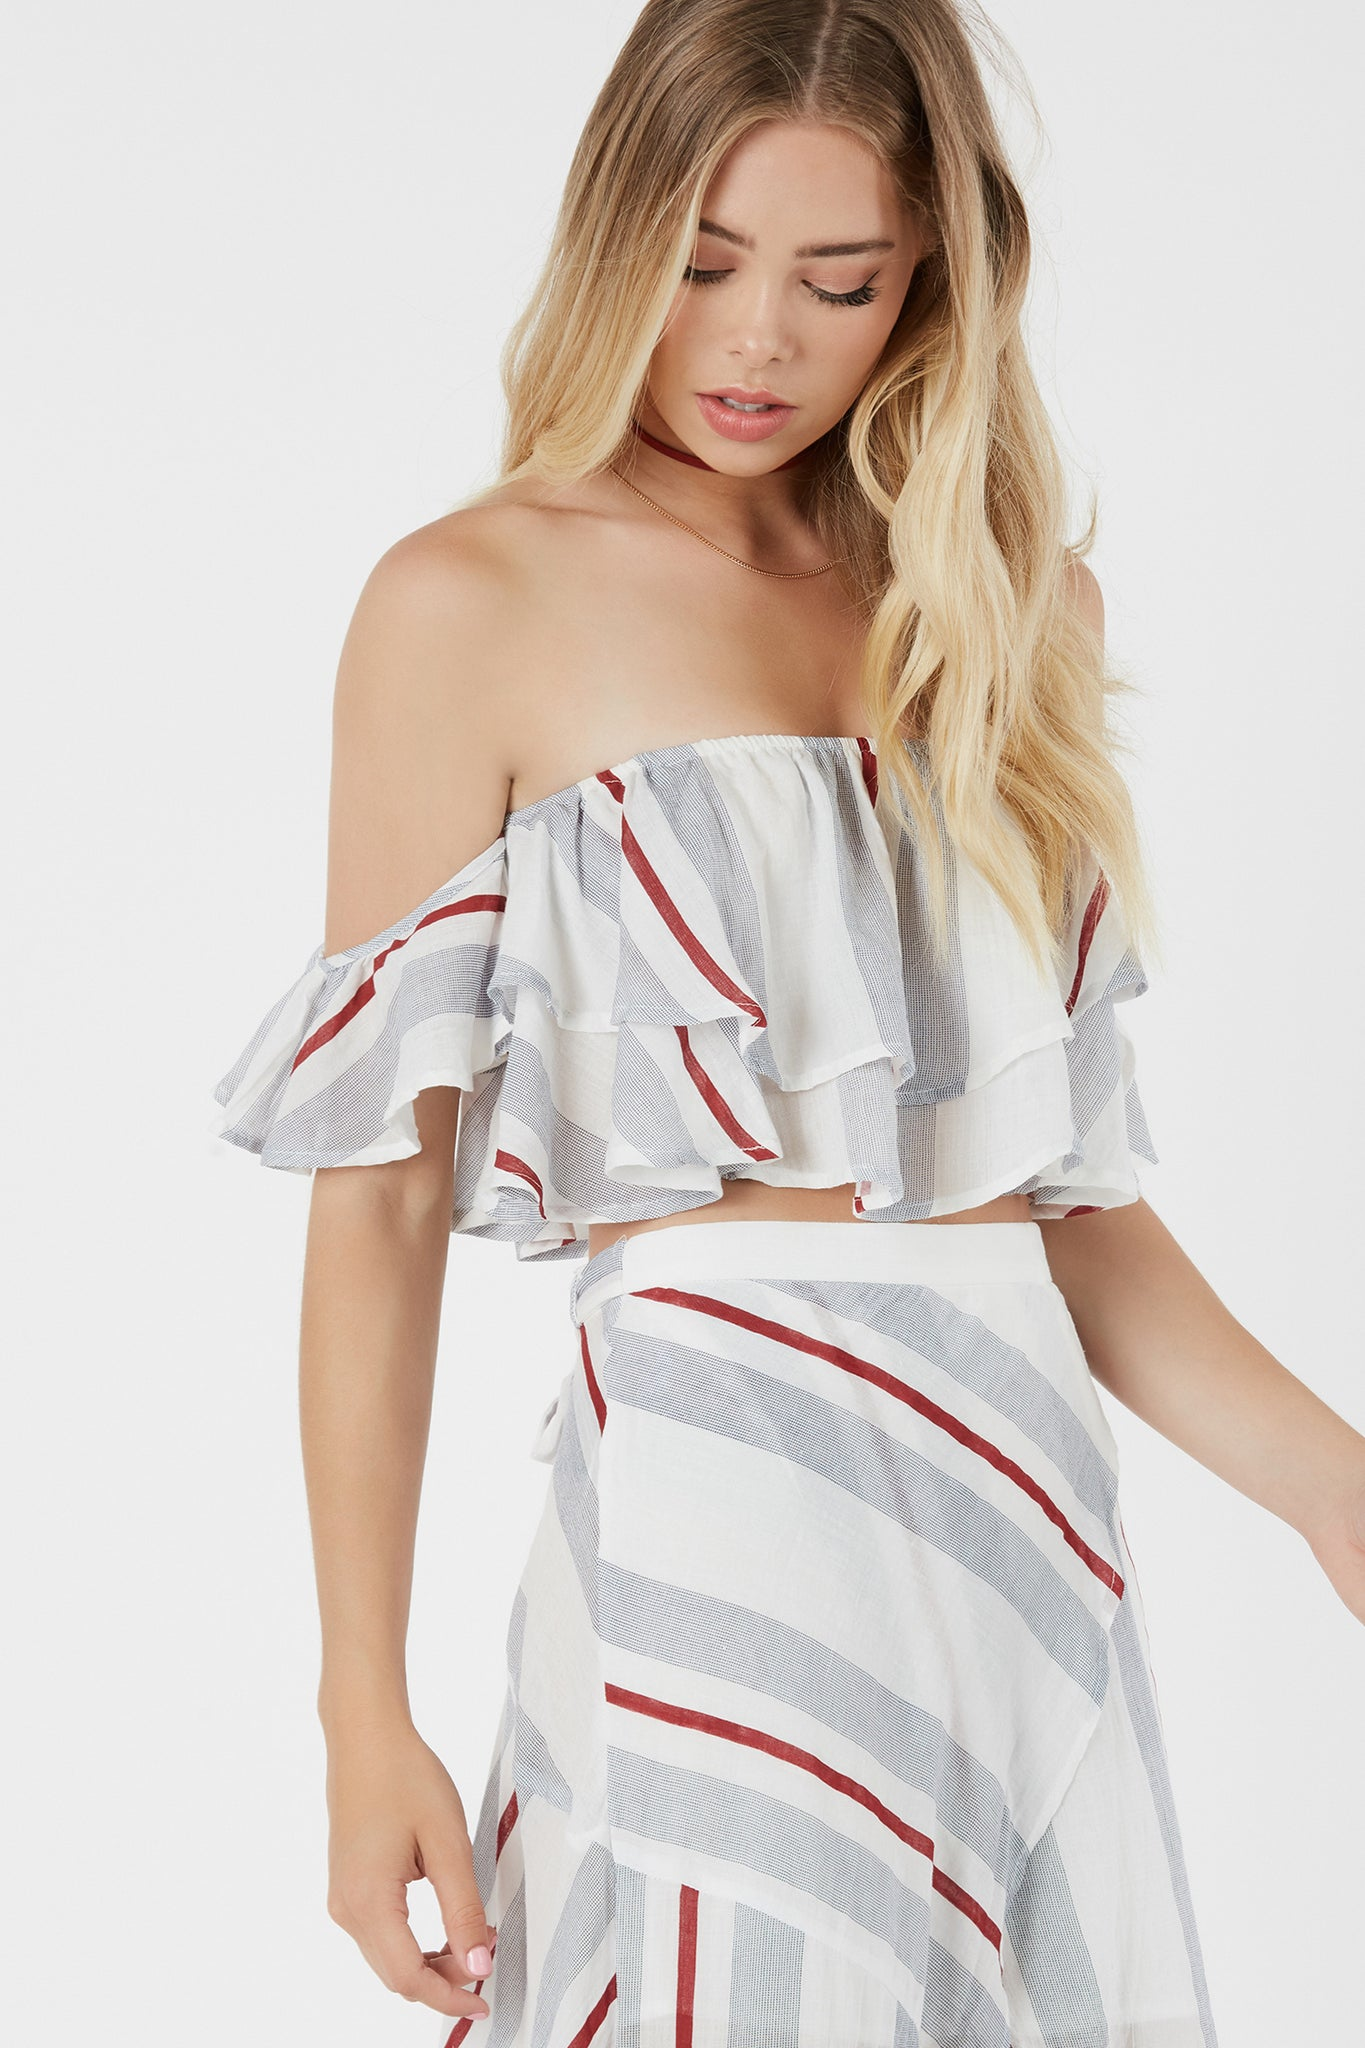 Flirty off shoulder crop top with tiered ruffle design. Stripe patterns throughout with elasticized band for secure fit.